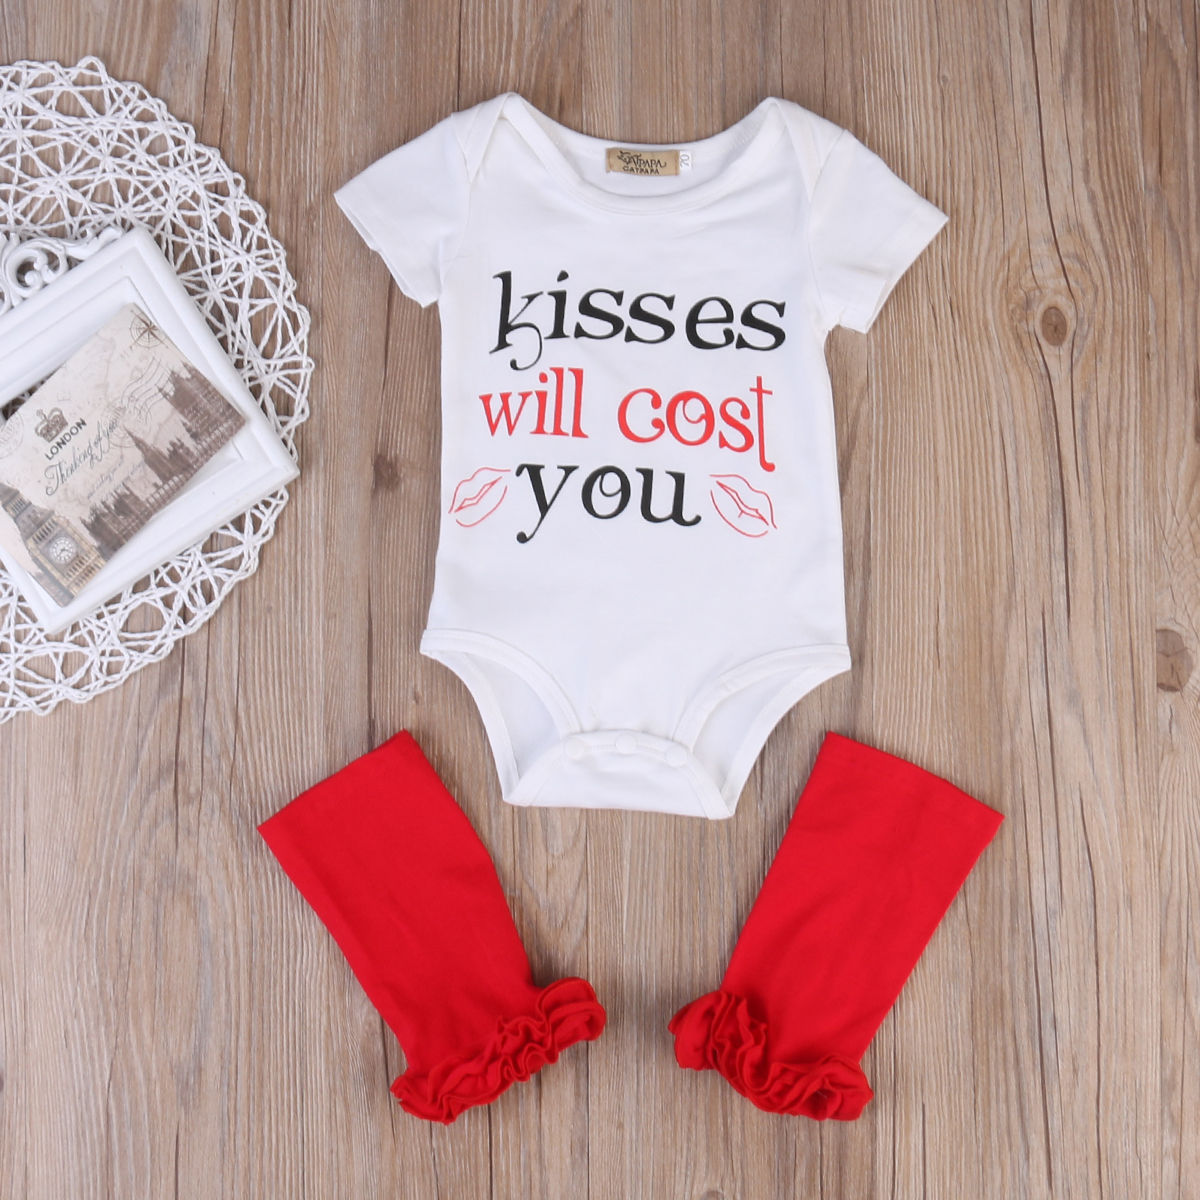 Newborn Toddler Kids Baby Boy Girl Outfits Summer Fashion White Short Sleeve Letter Romper+Red Leg Warmers 2pcs Sets Clothes